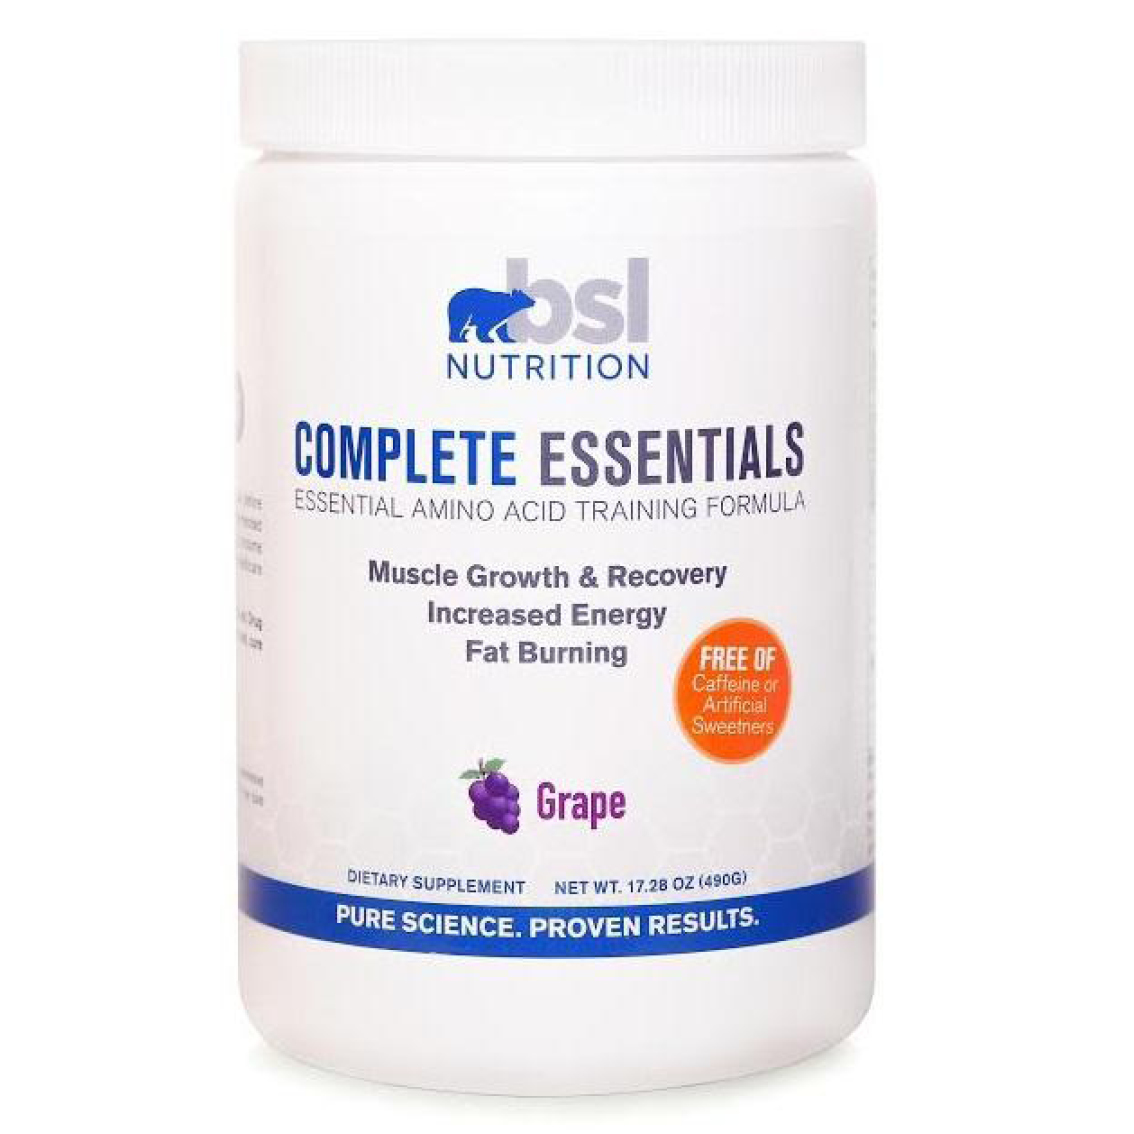 bsl nutrition complete essentials grape image